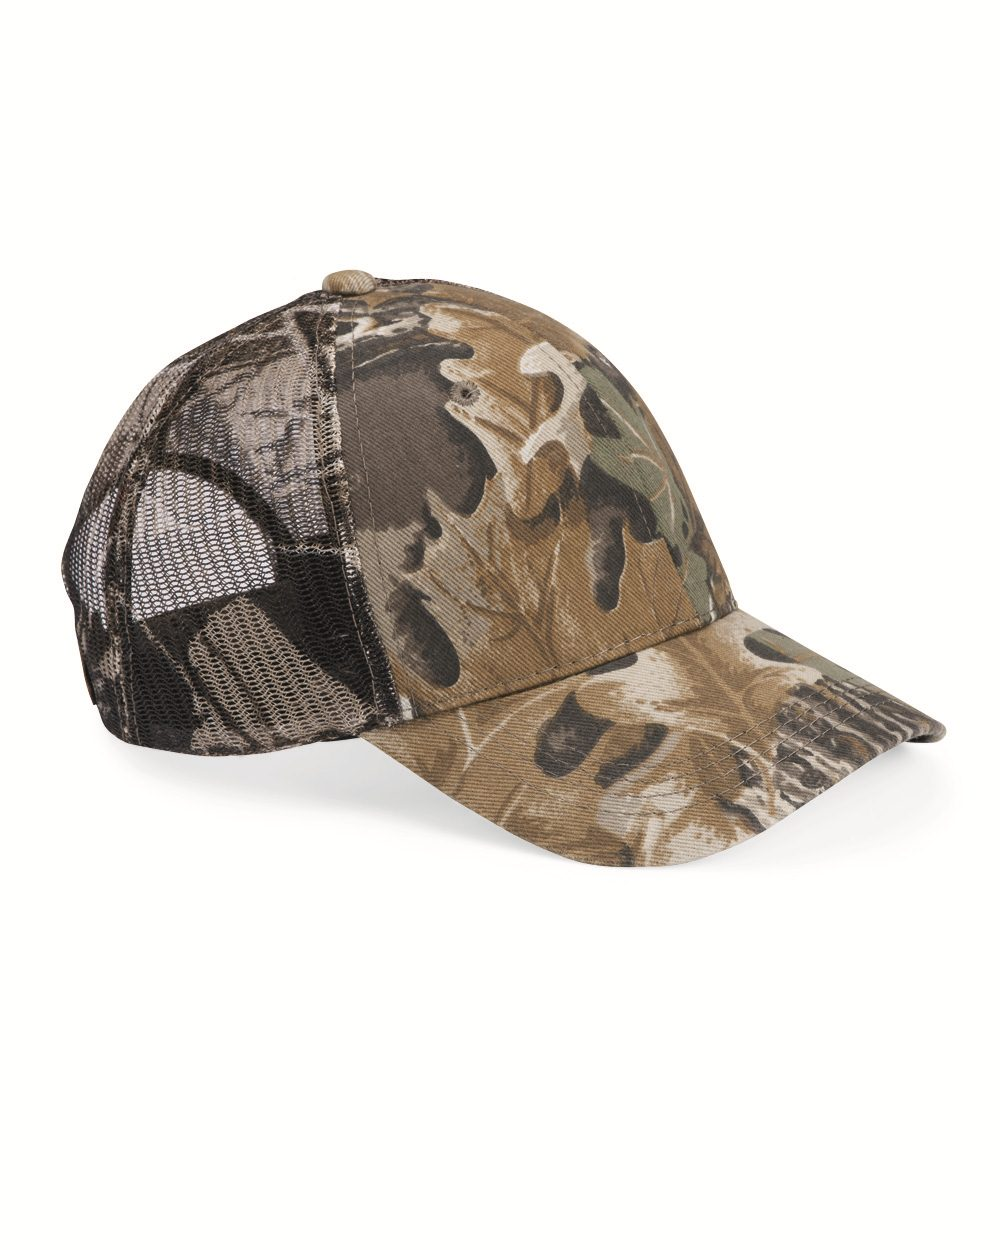 Outdoor Cap 415PC-Classic Mesh Back Velcro Cap